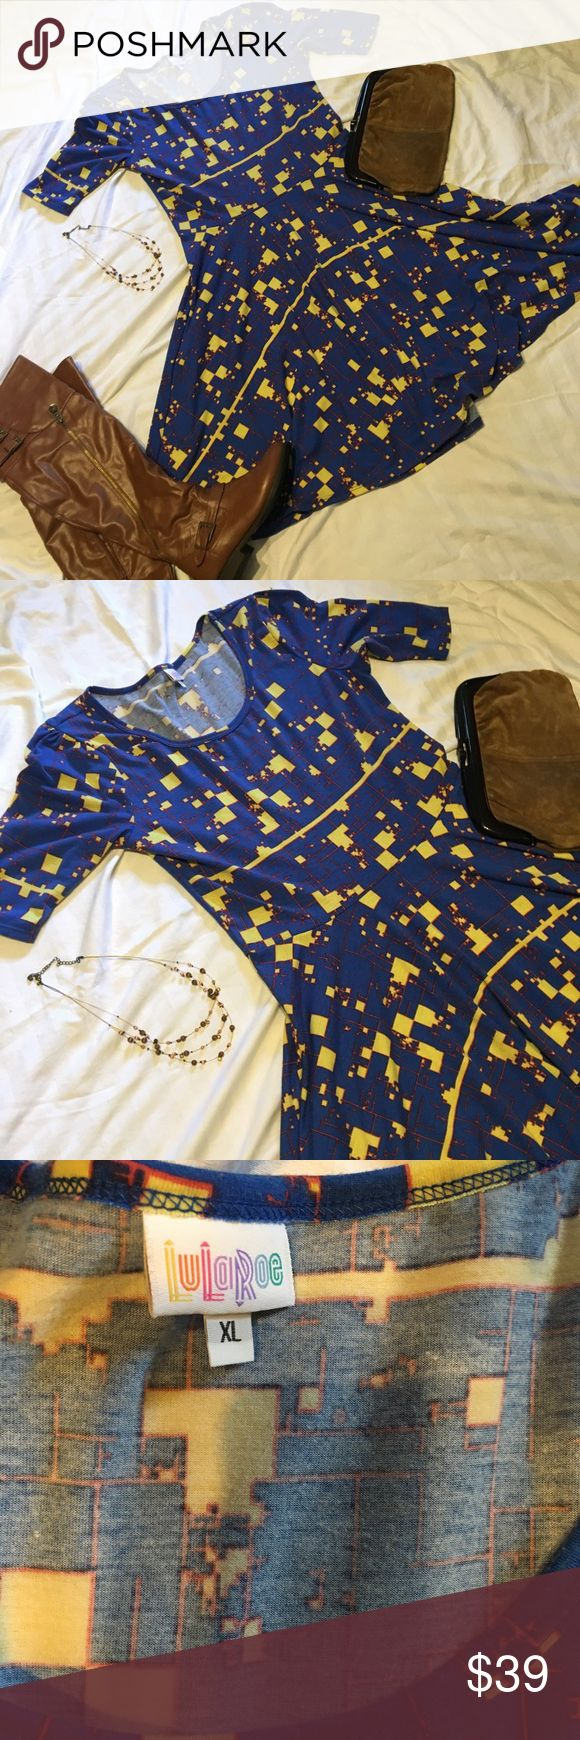 Royal blue LLR Nicole EUC. Blue with yellow and maroon pattern. Super soft. Worna handful of times and always hung to dry. Matching boots, necklace, and vintage clutch also available from my closet! Make an offer! 30% off bundles of 2 or more! LuLaRoe Dresses